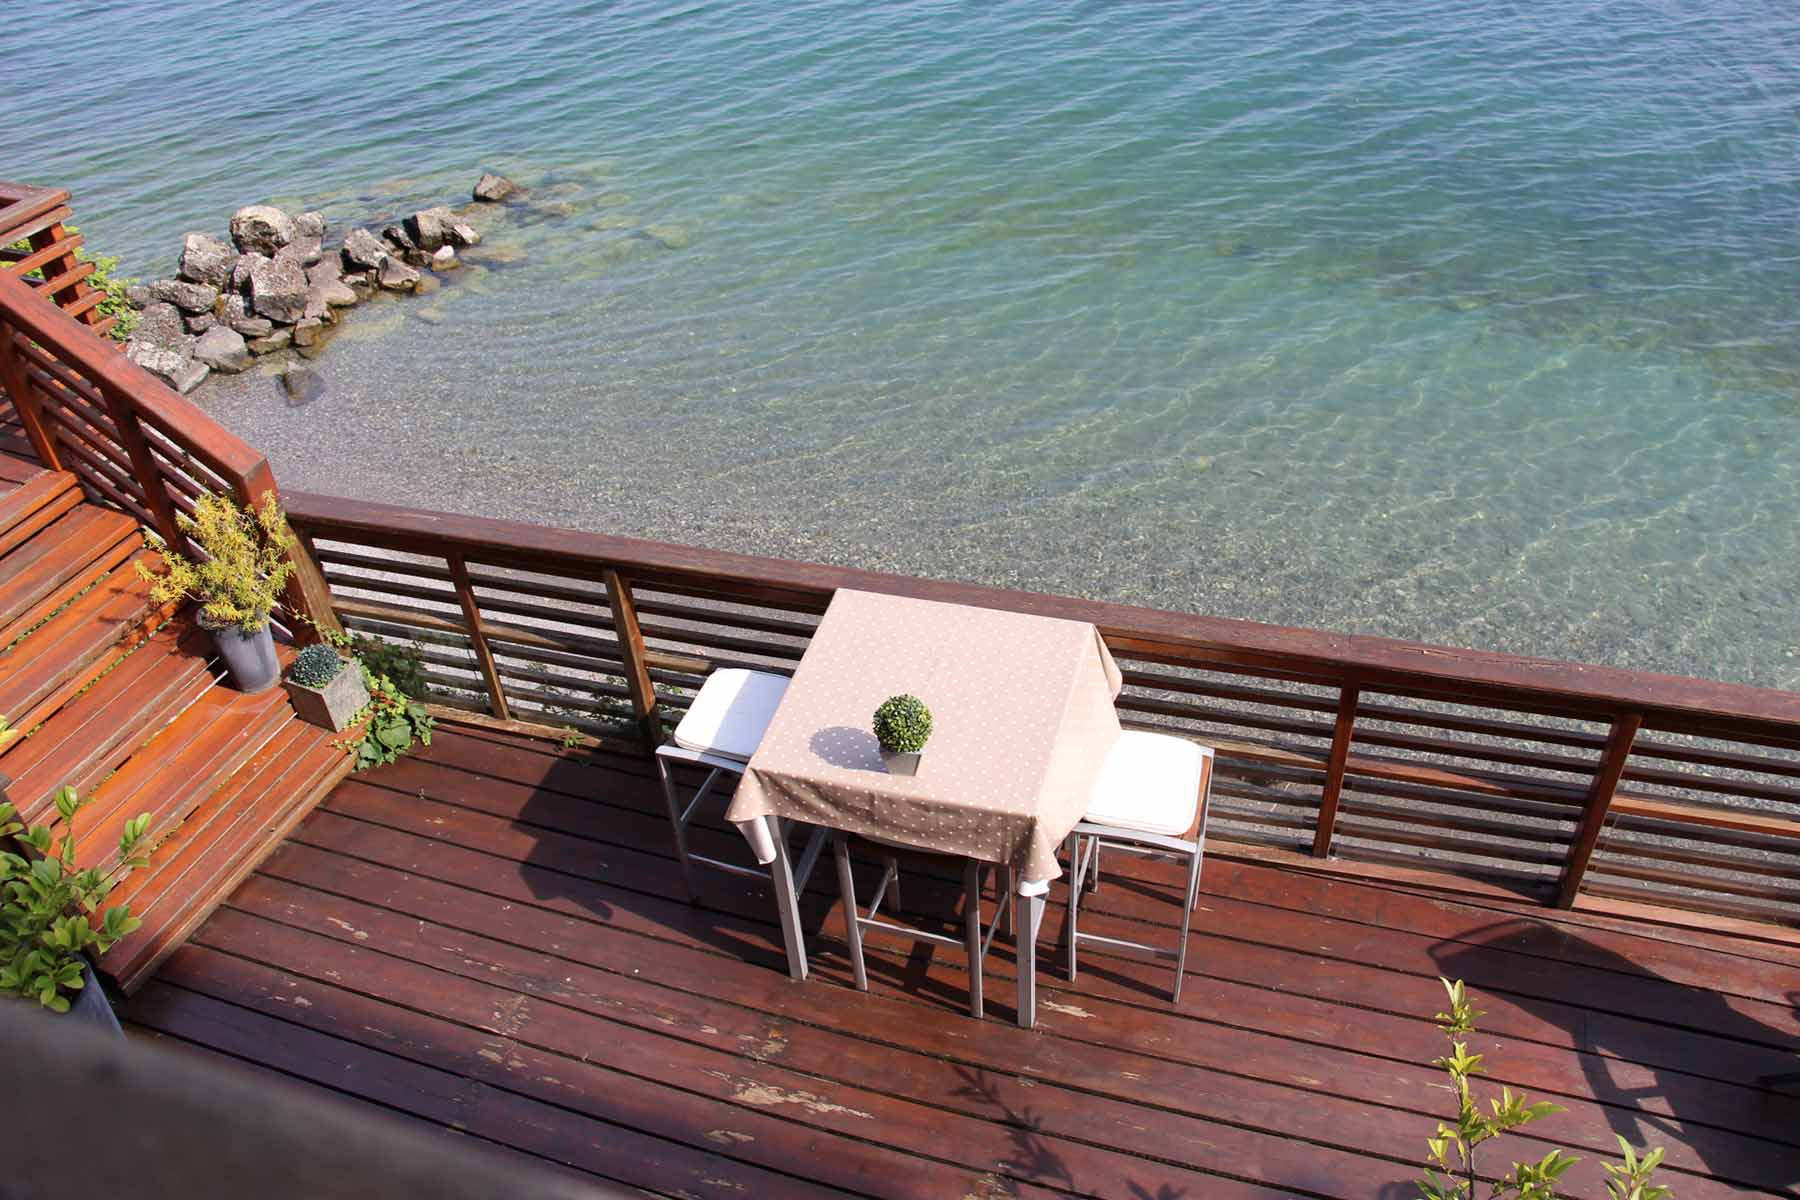 Meillerie Villa Decking with table